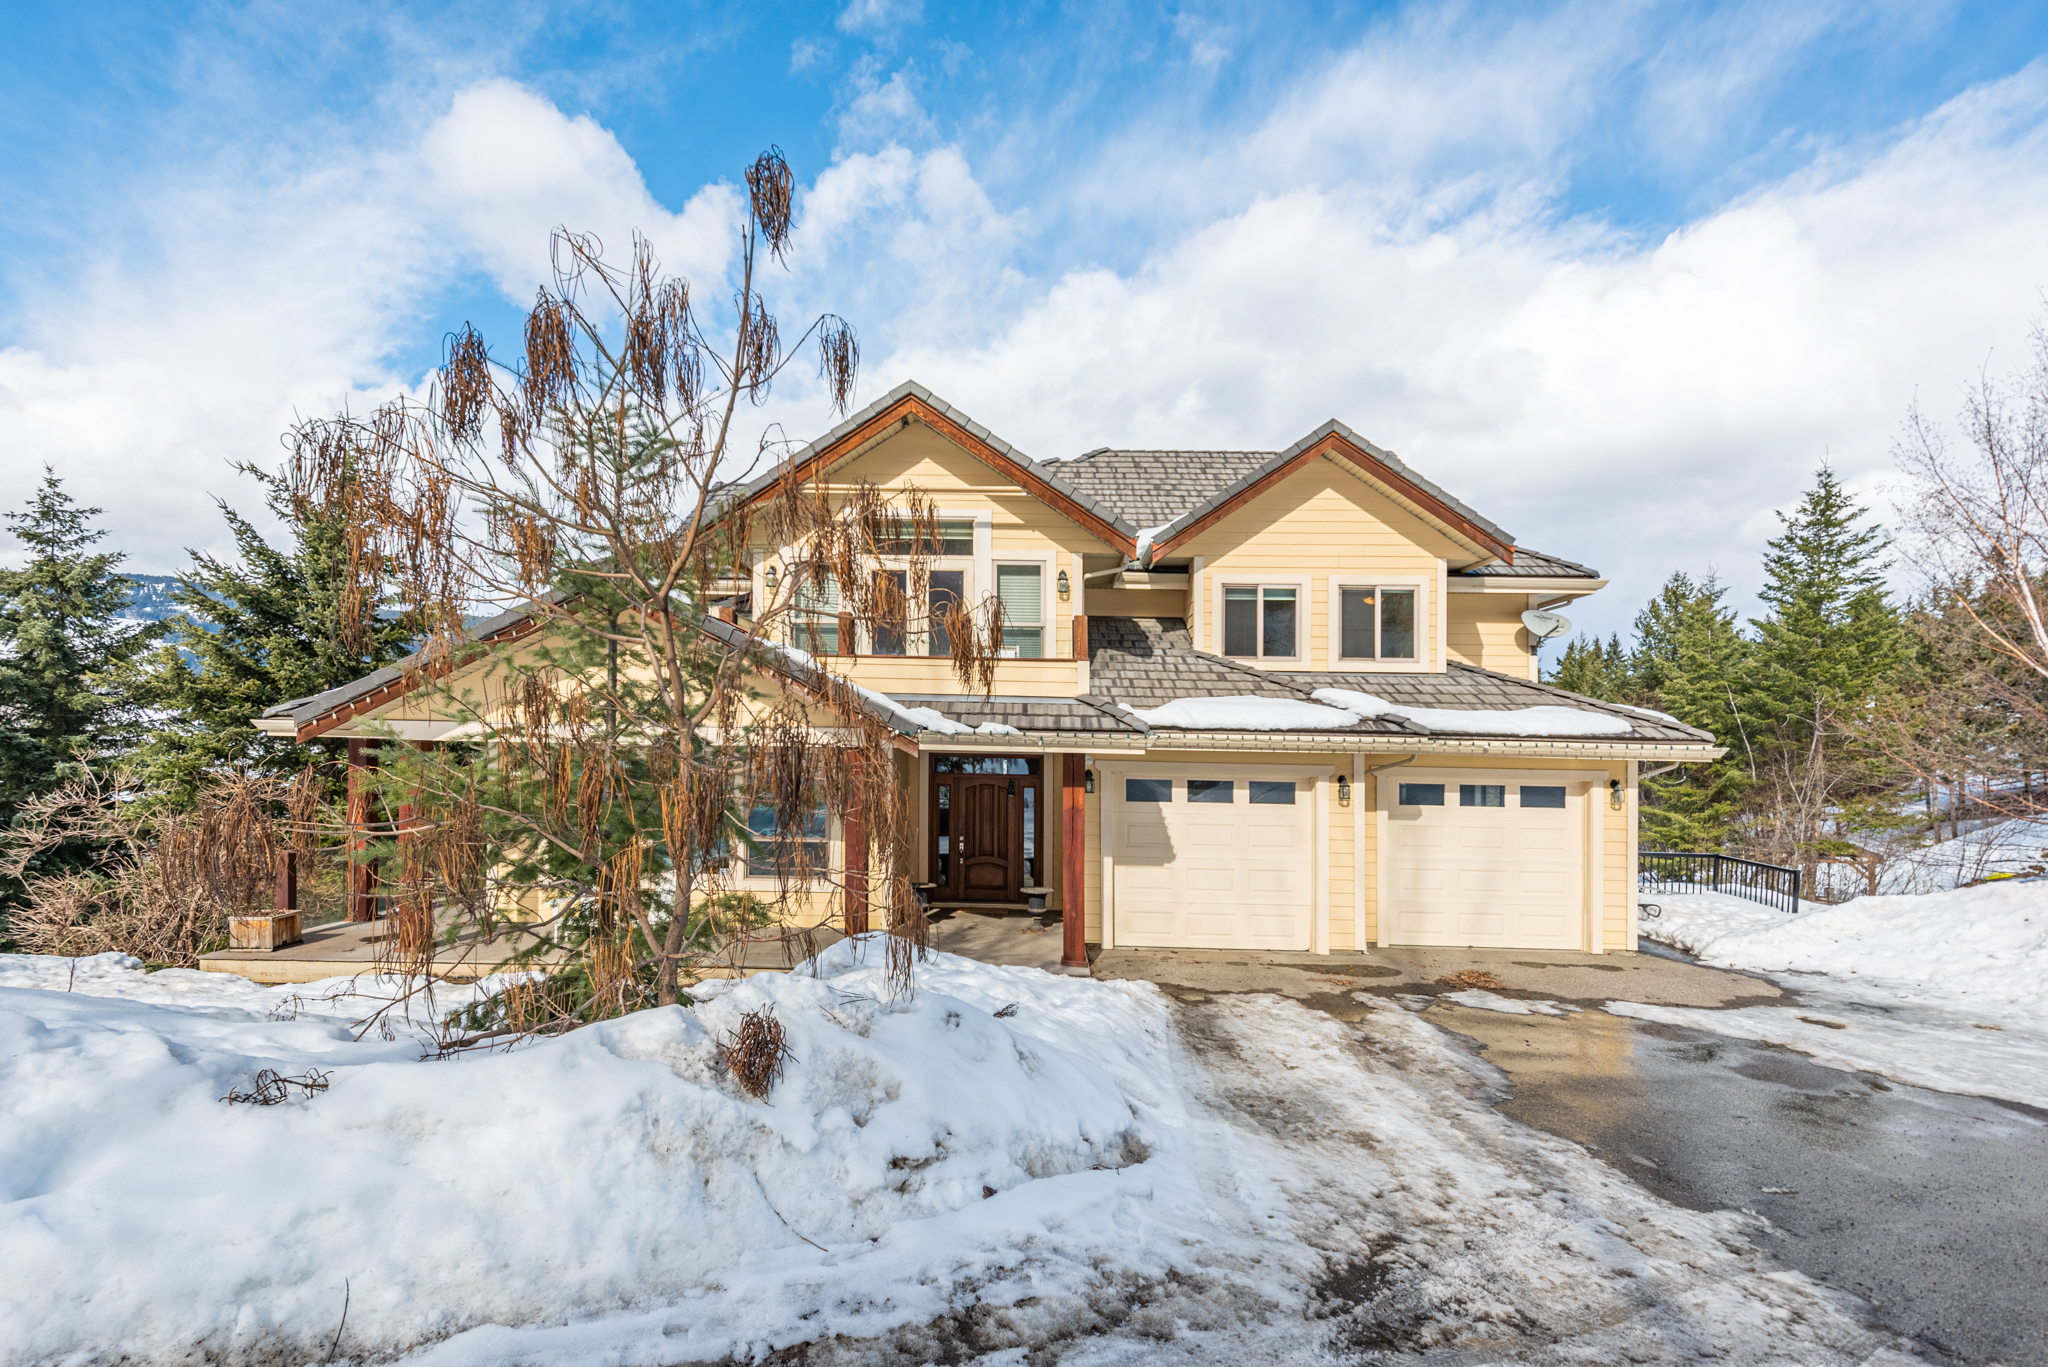 4004 Coachwood Close, Coldstream, BC V1B 3Y4